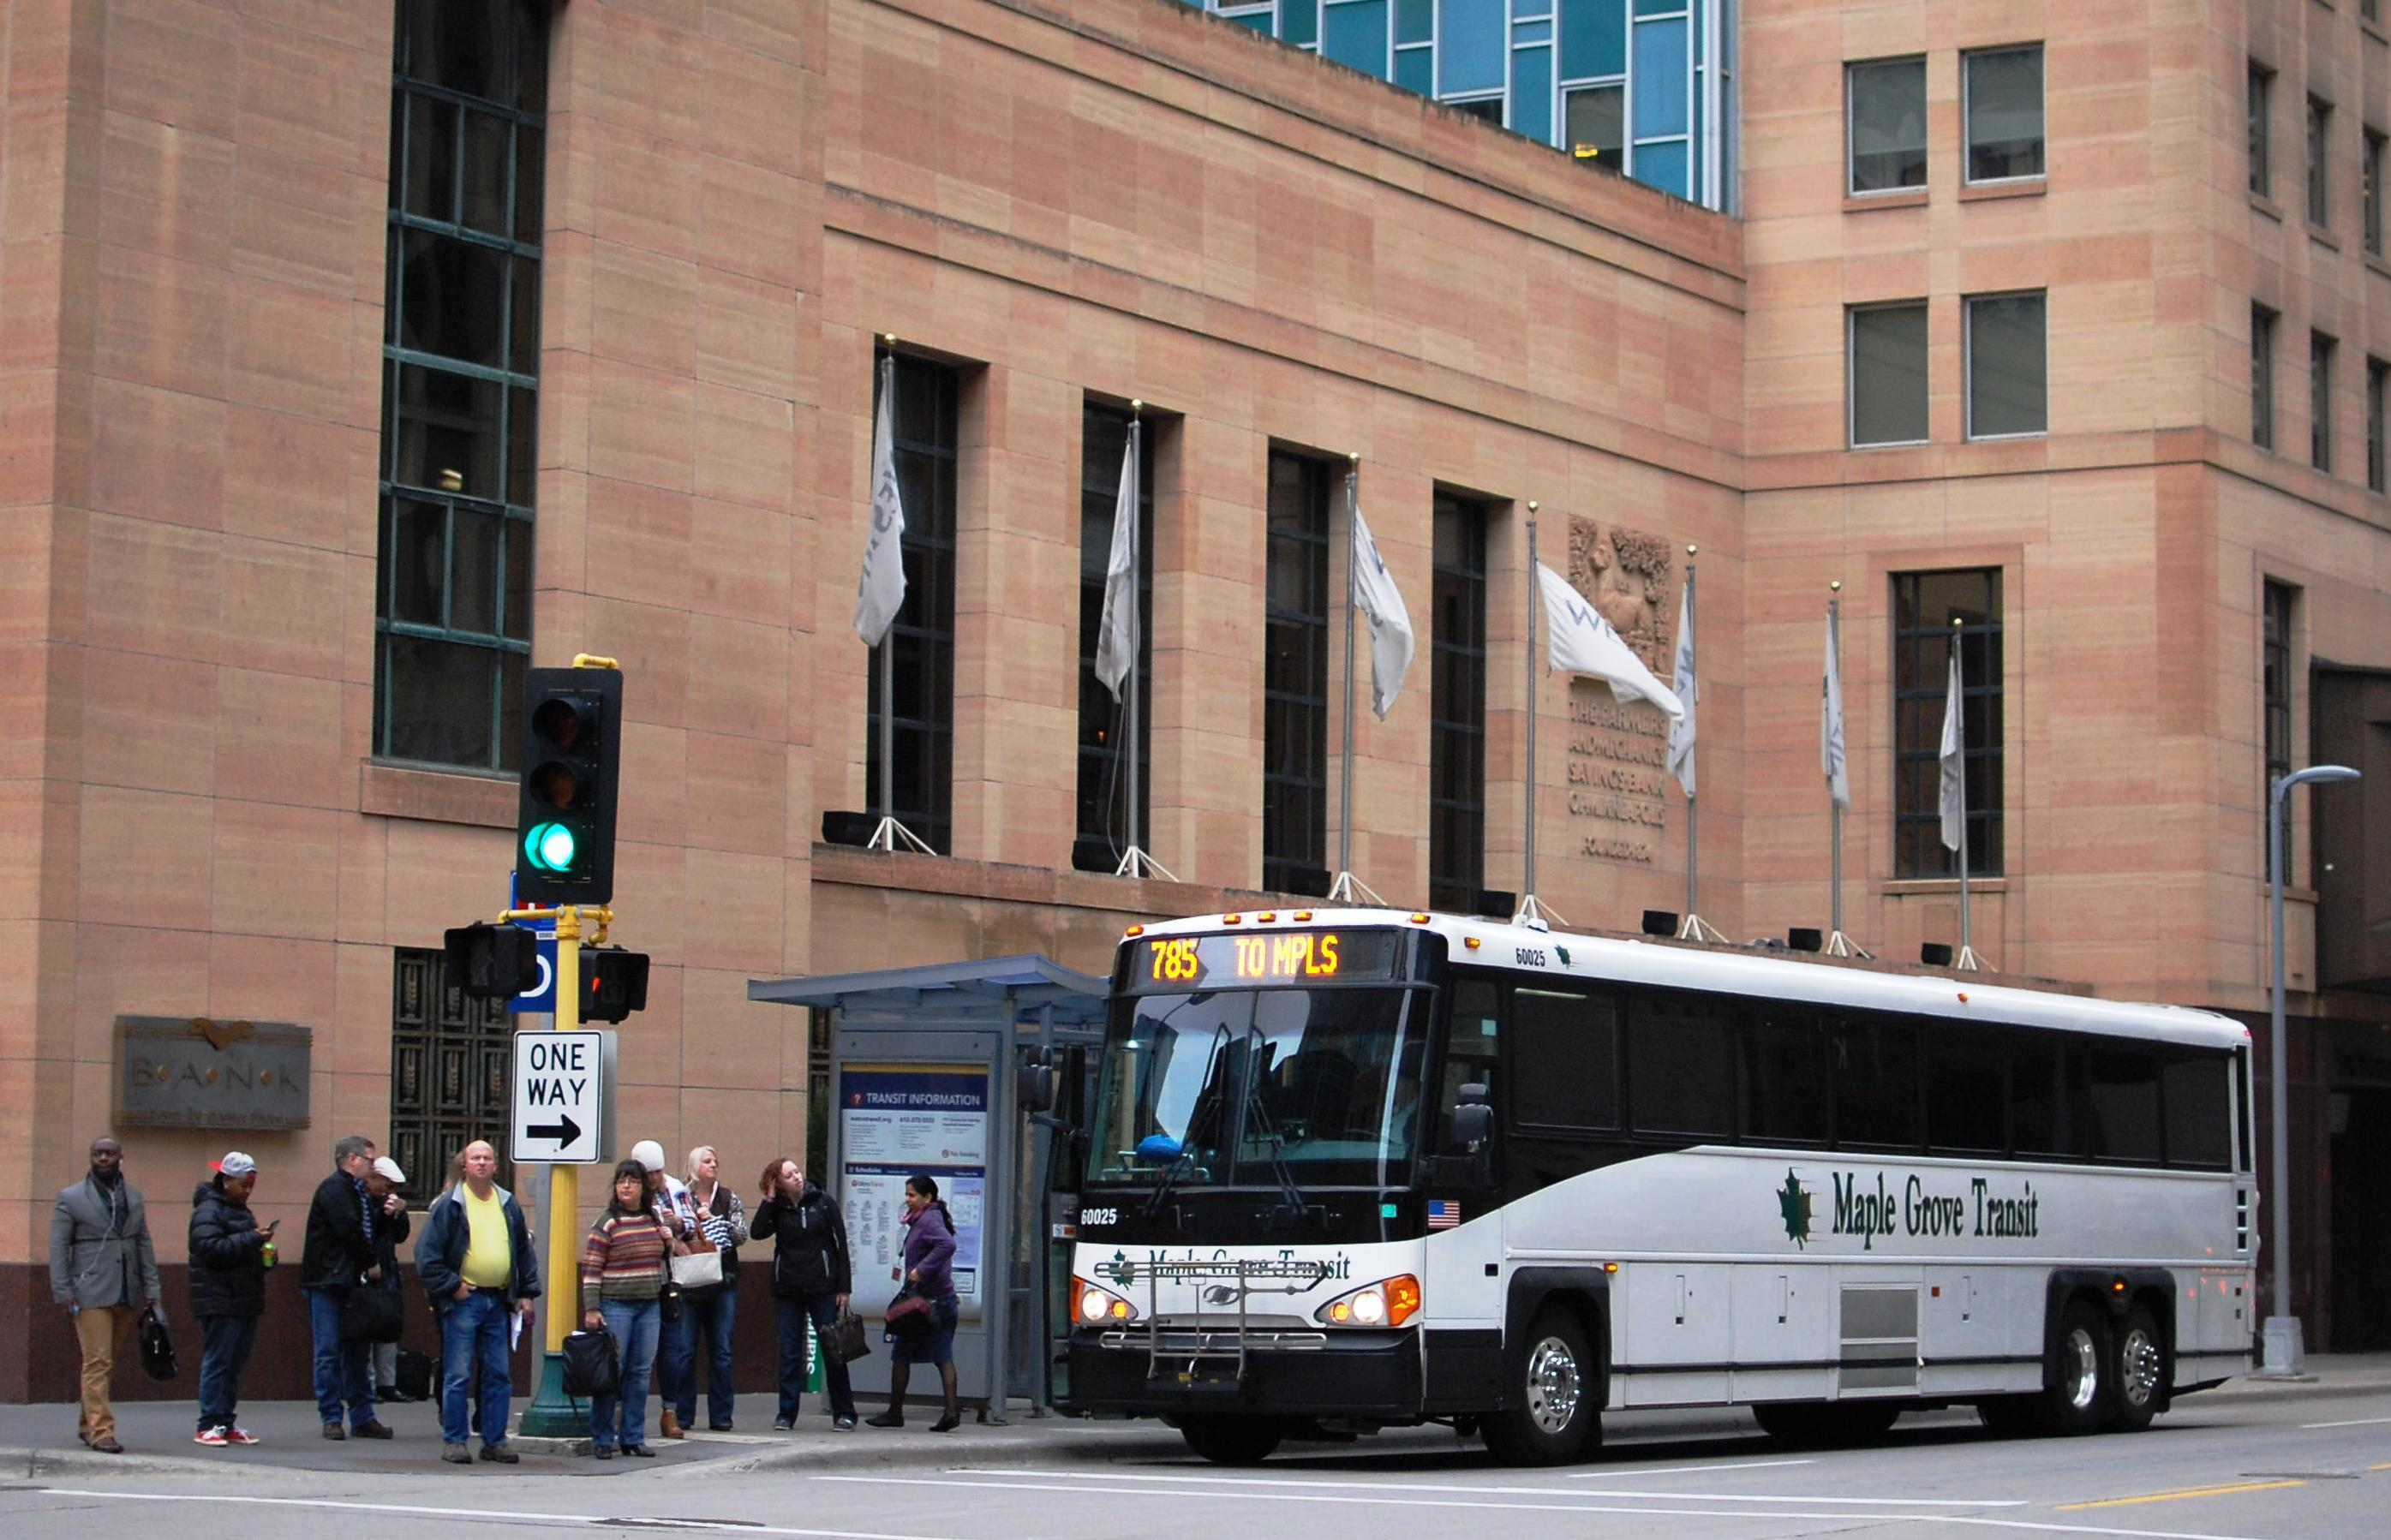 Customers exit a Maple Grove Transit bus in downtown Minneapolis.